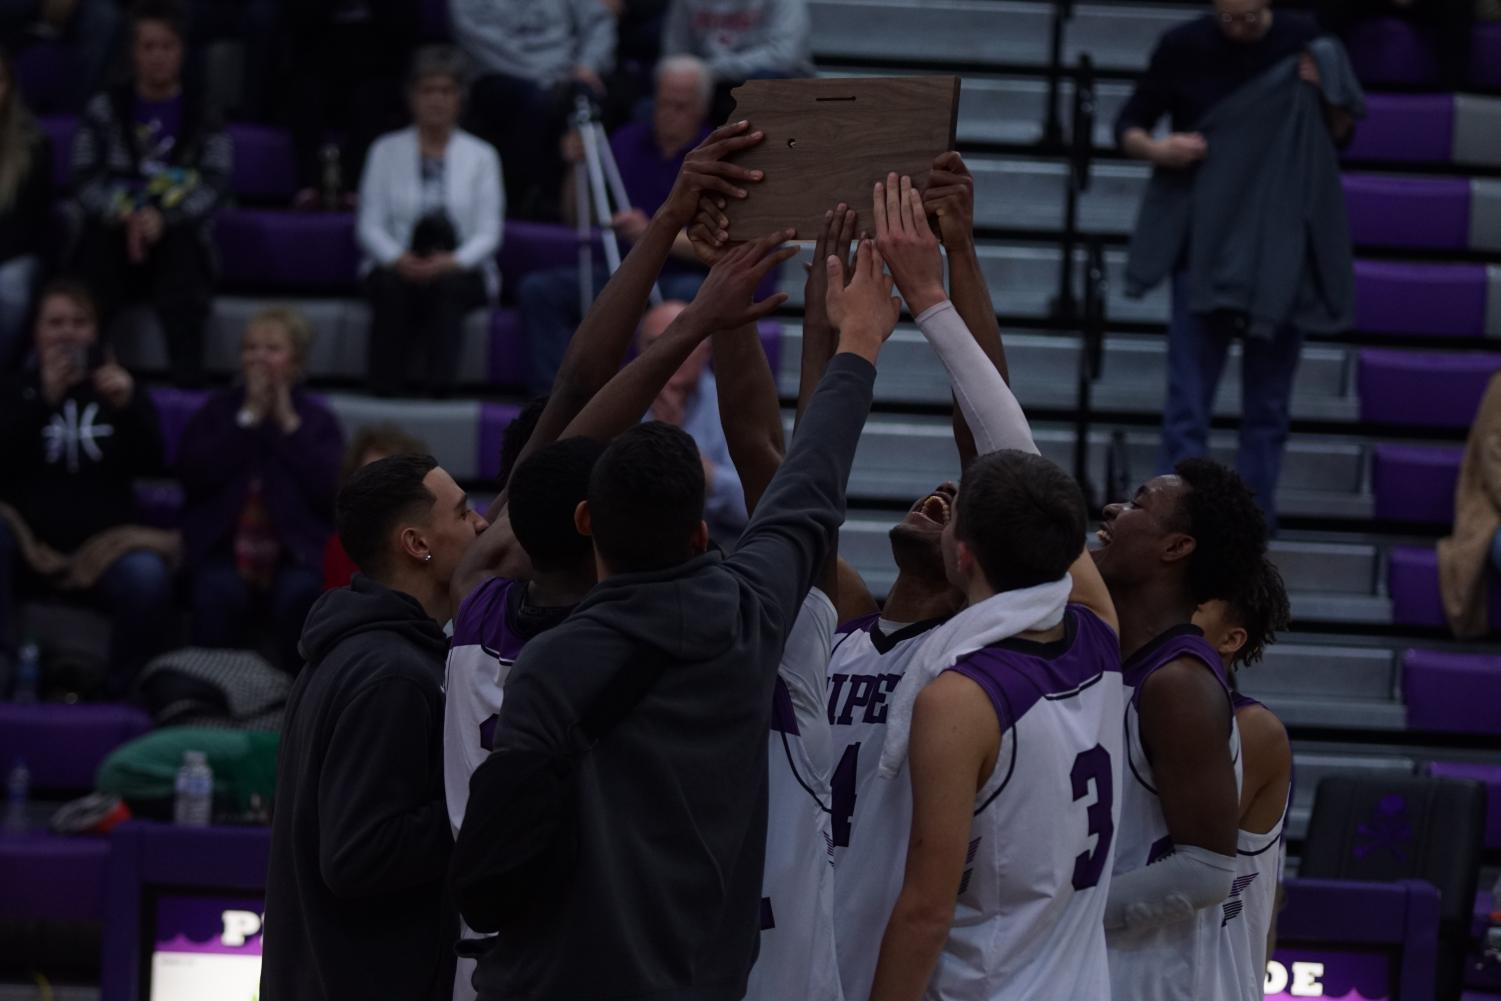 The Pirate boys lift the Sub-State plaque in celebration after beating Field Kindley High School.